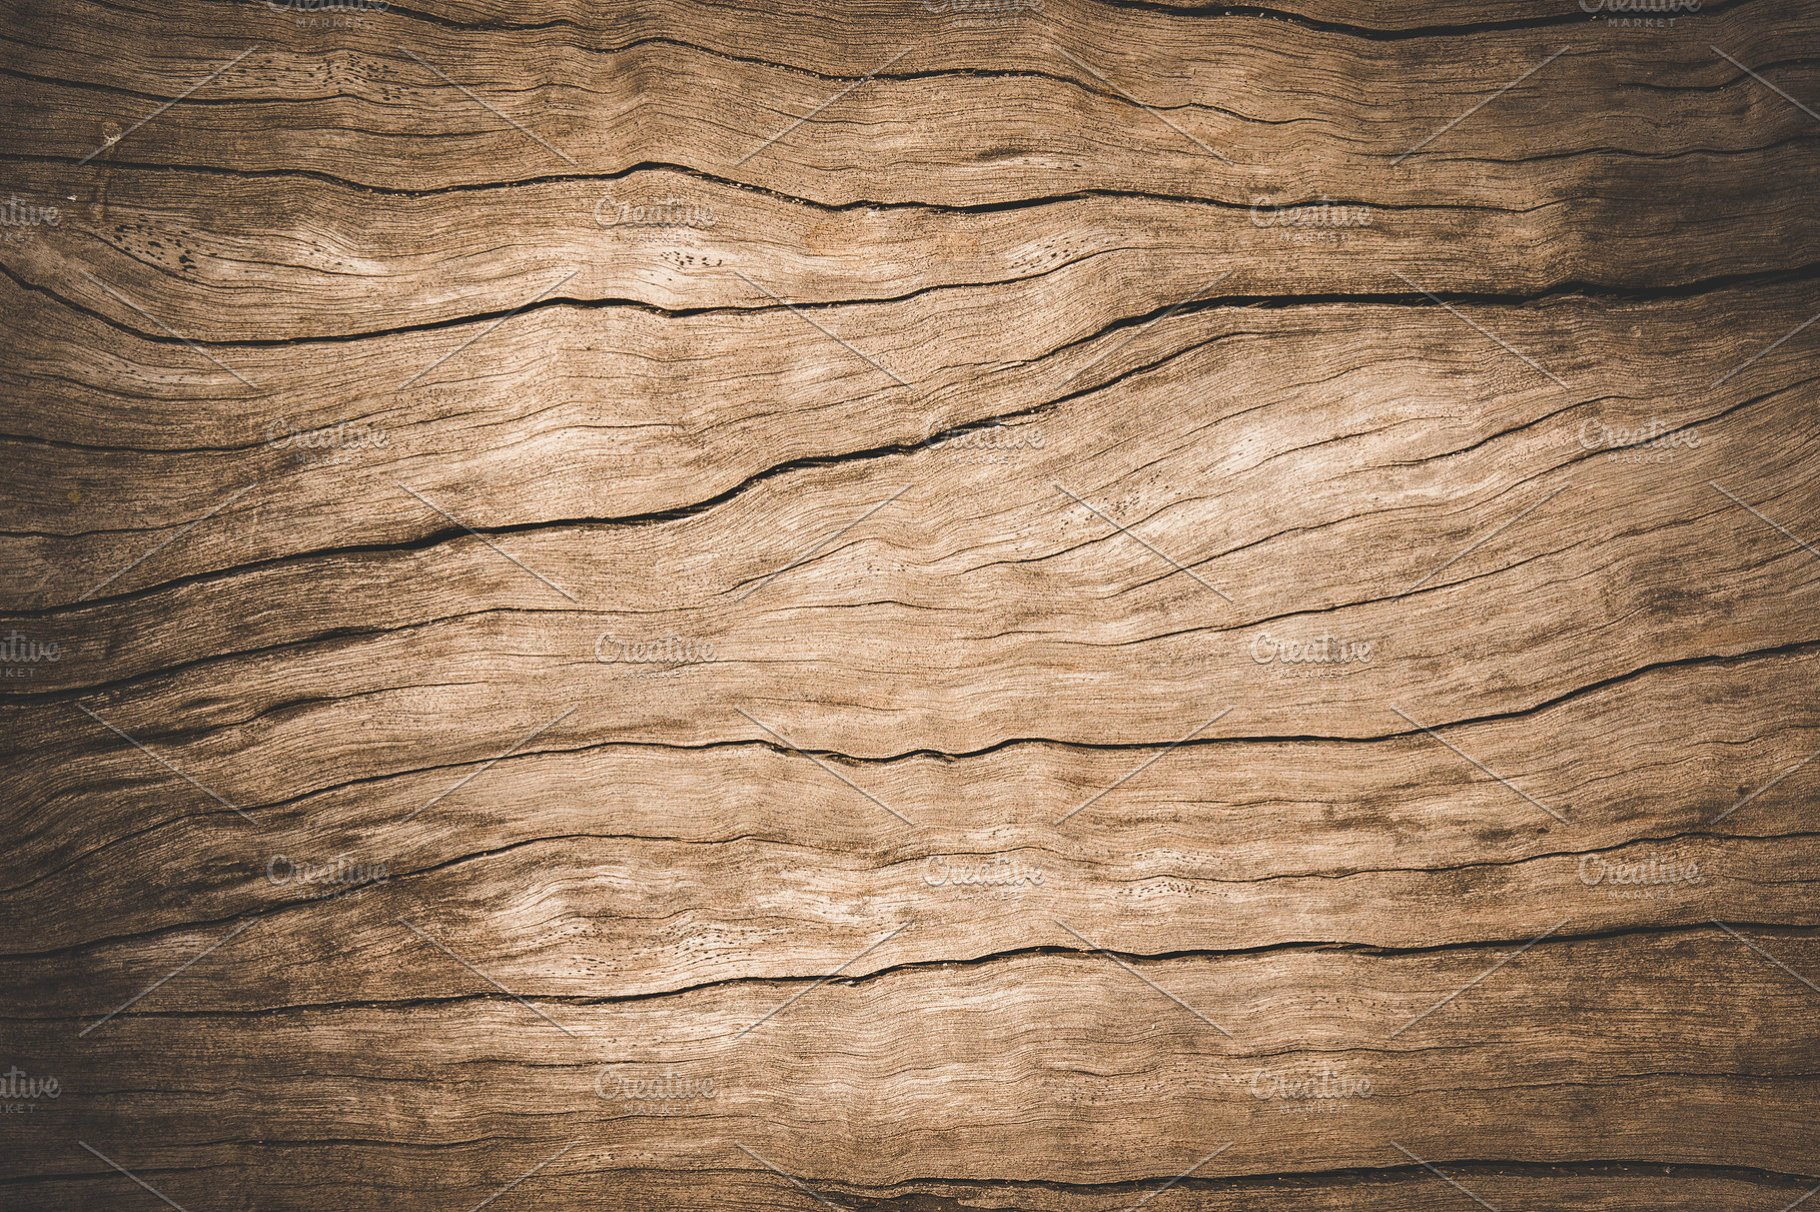 Texture old wood brown color BG | High-Quality Abstract ...